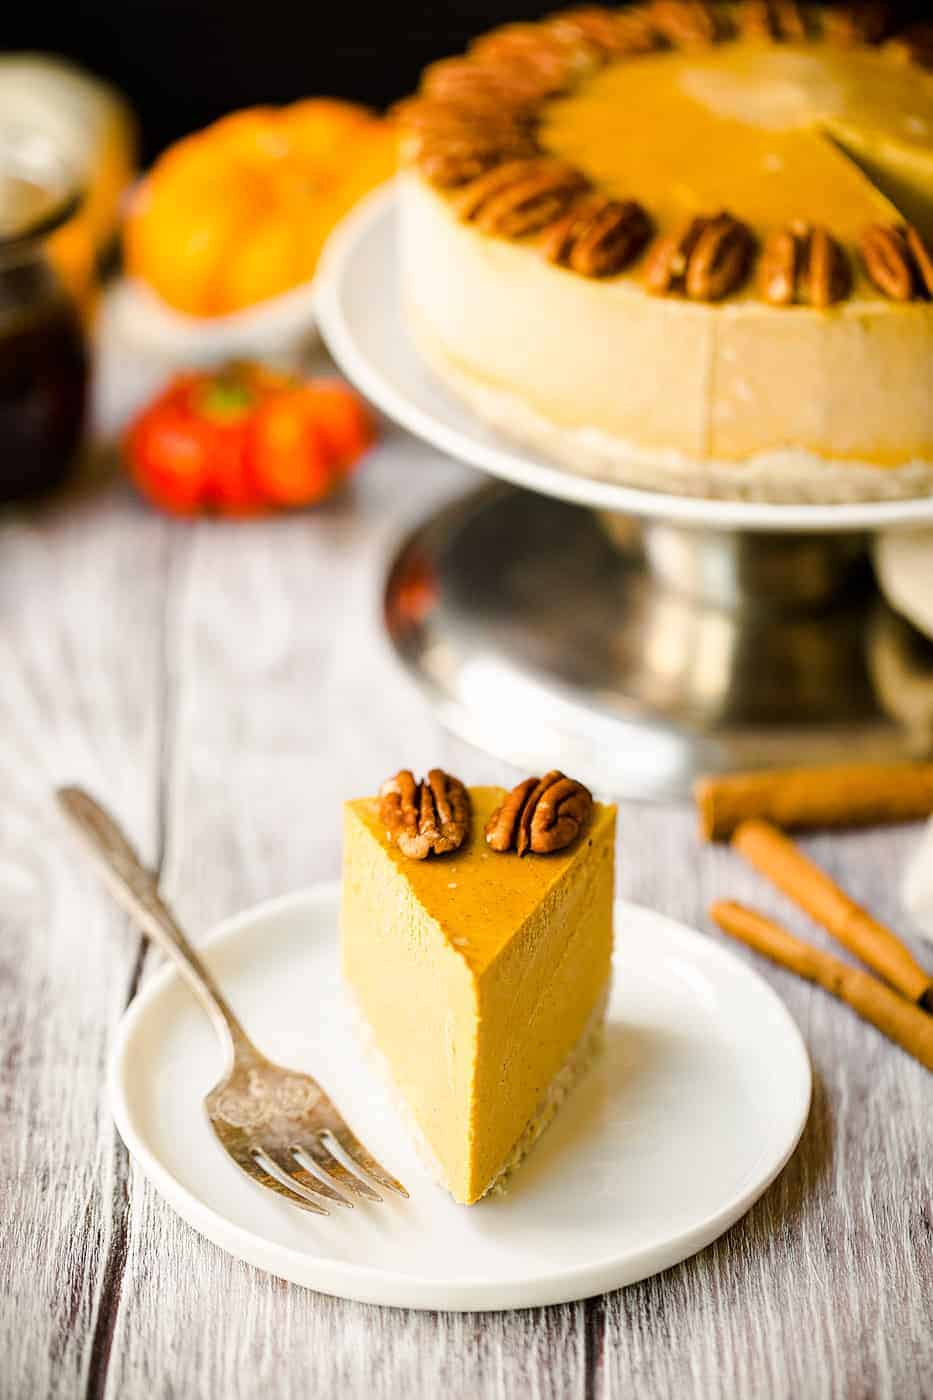 a slice of vegan pumpkin cheesecake with pecans on a white plate with a fork on the side